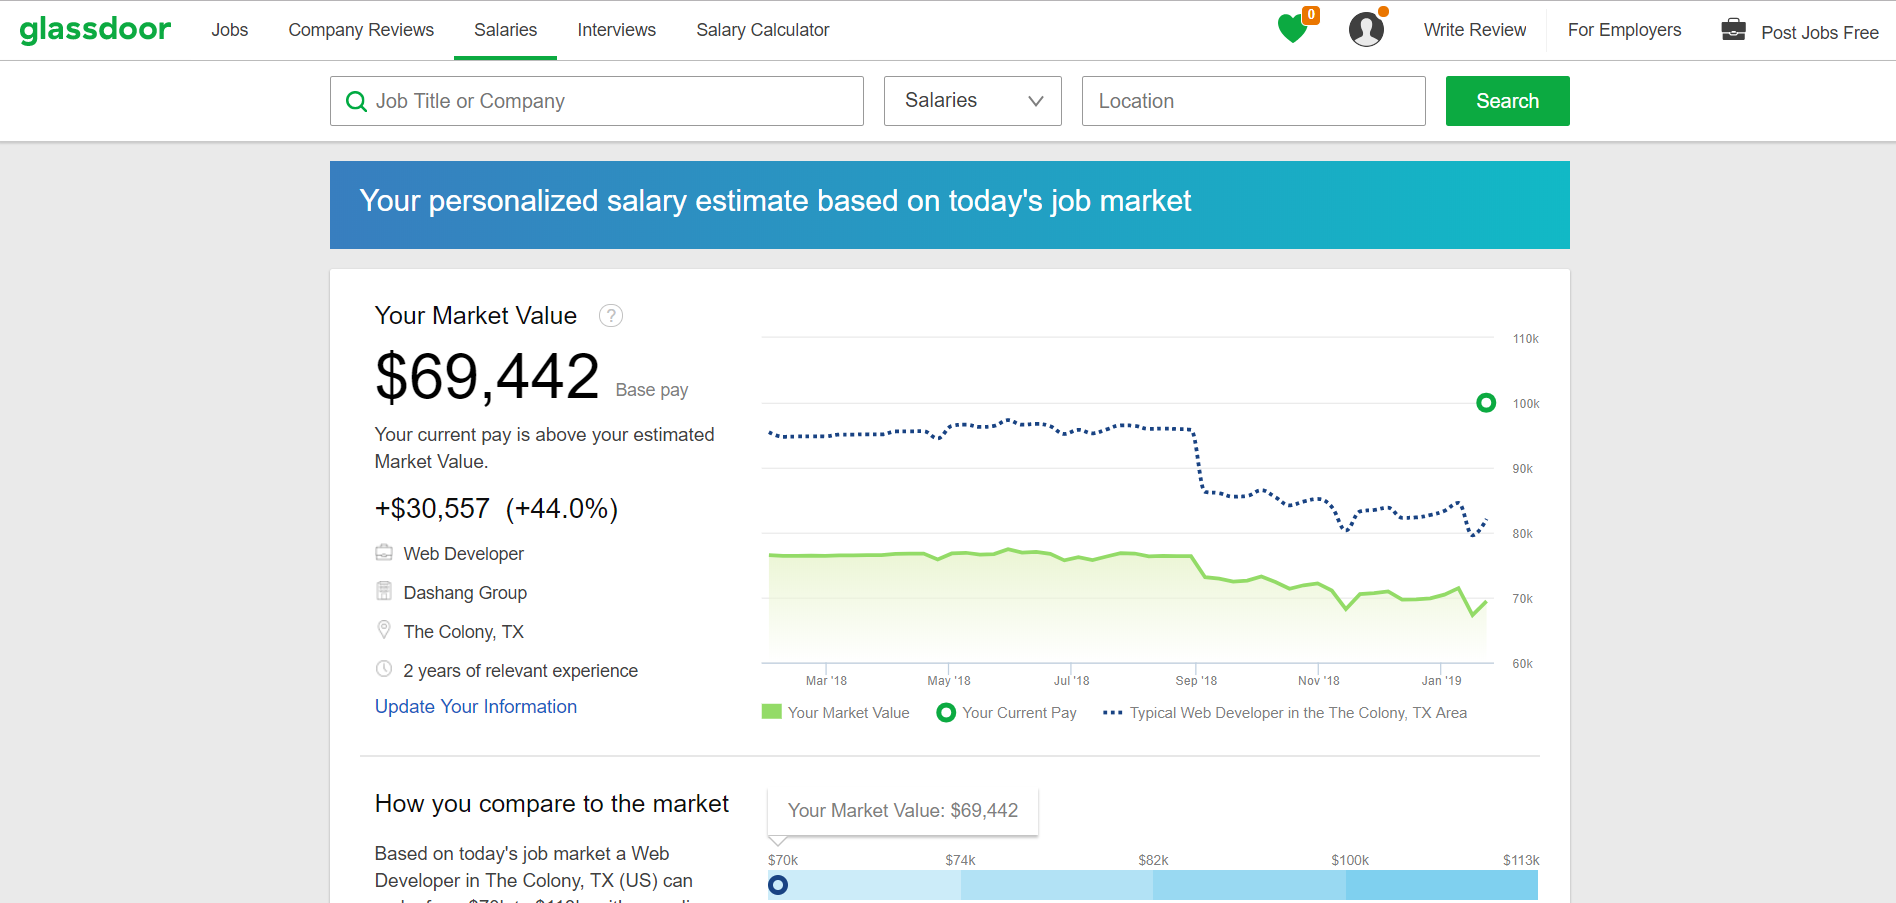 How to Create a Job Board Website Like Glassdoor: Complete Guide